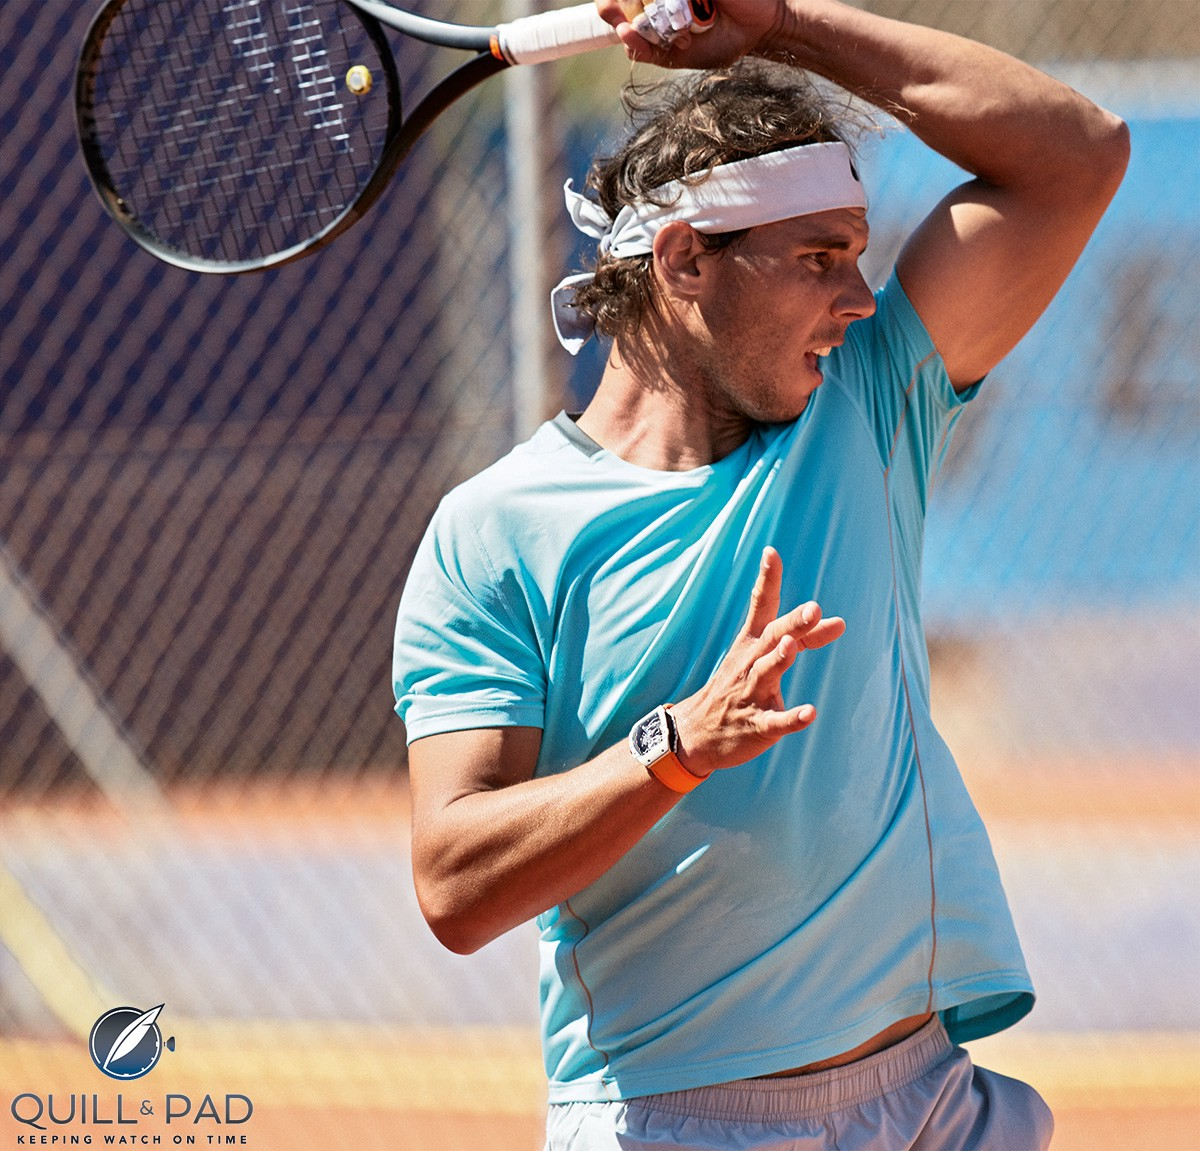 Rafael Nadal's energetic style of tennis is the ultimate test for the Richard Mille RM 27-02 RN